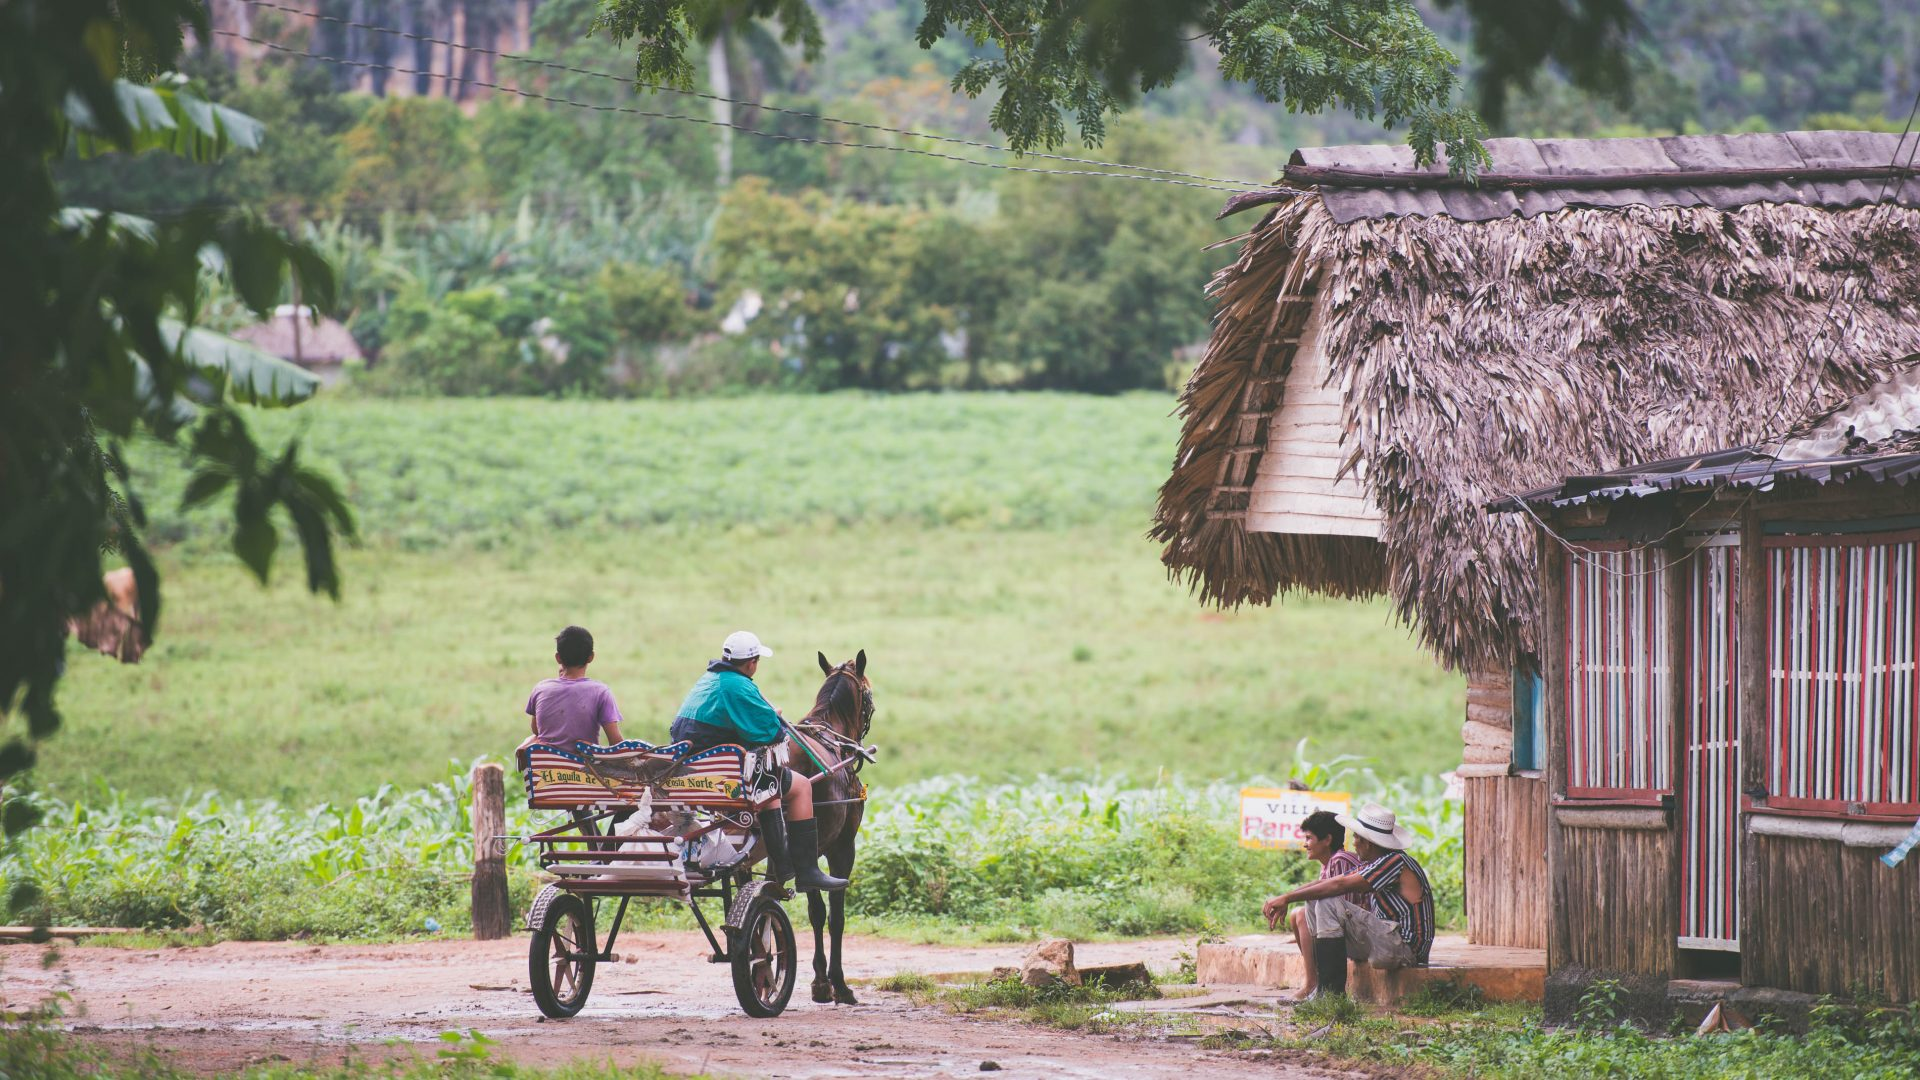 Men on their horse cart pause to talk with a neighbor in the green fields of Viñales, Cuba.